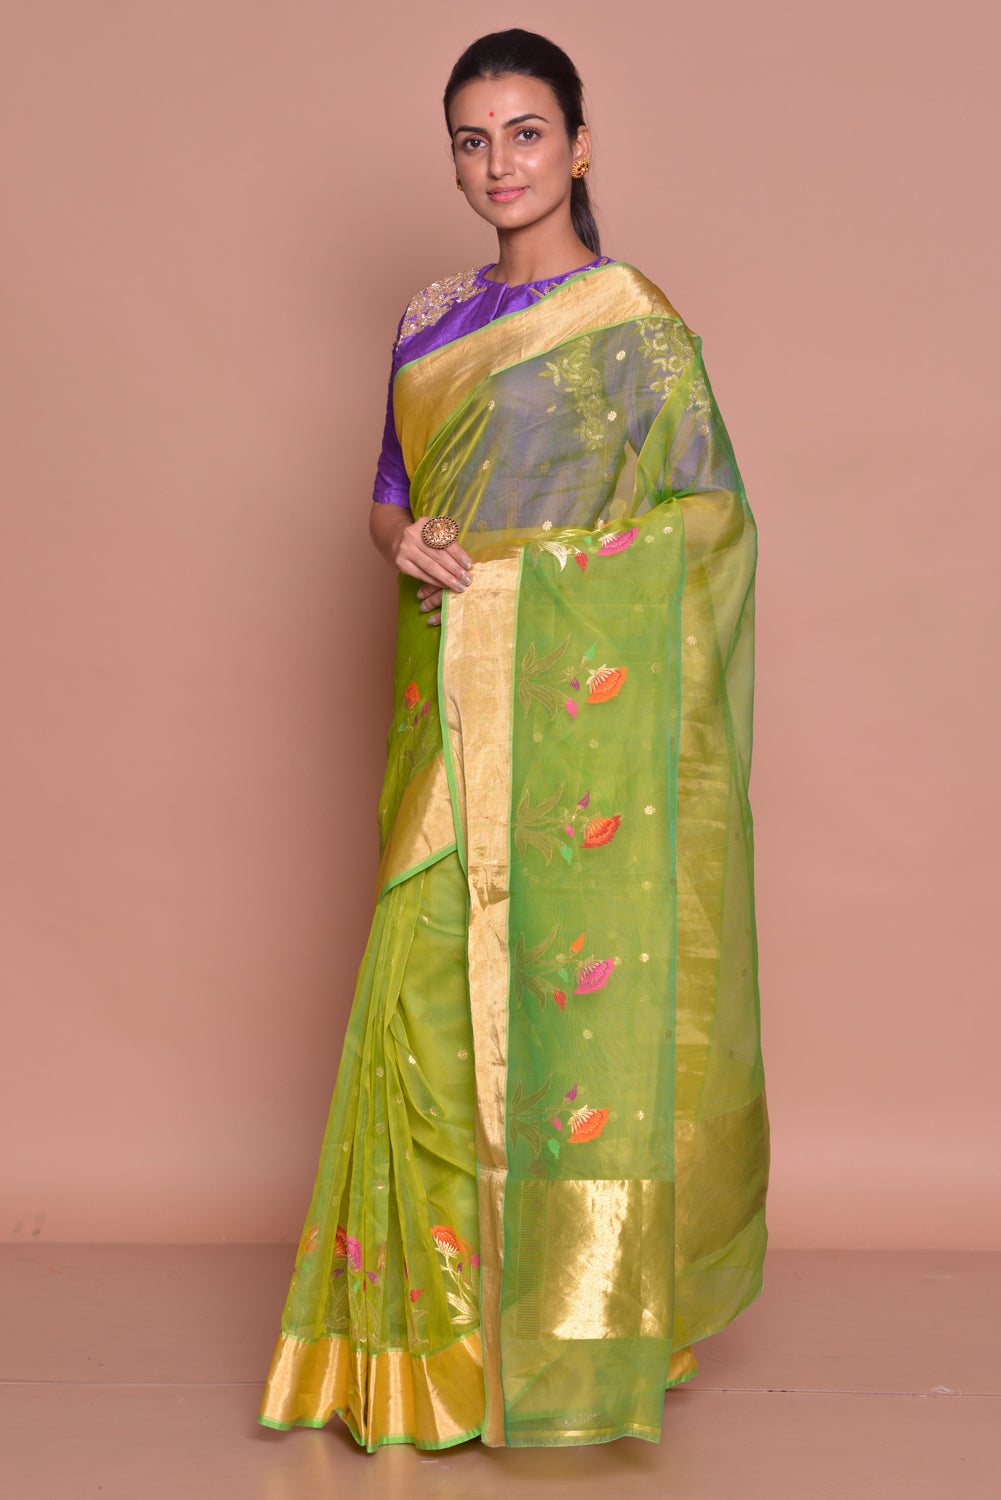 Buy stunning yellow green embroidered chanderi silk saree online in USA with purple embroidered sari blouse. Set ethnic fashion goals with exquisite designer sarees with blouse, Banarasi sarees, Kanchipuram saris from Pure Elegance Indian luxury clothing store in USA.-side